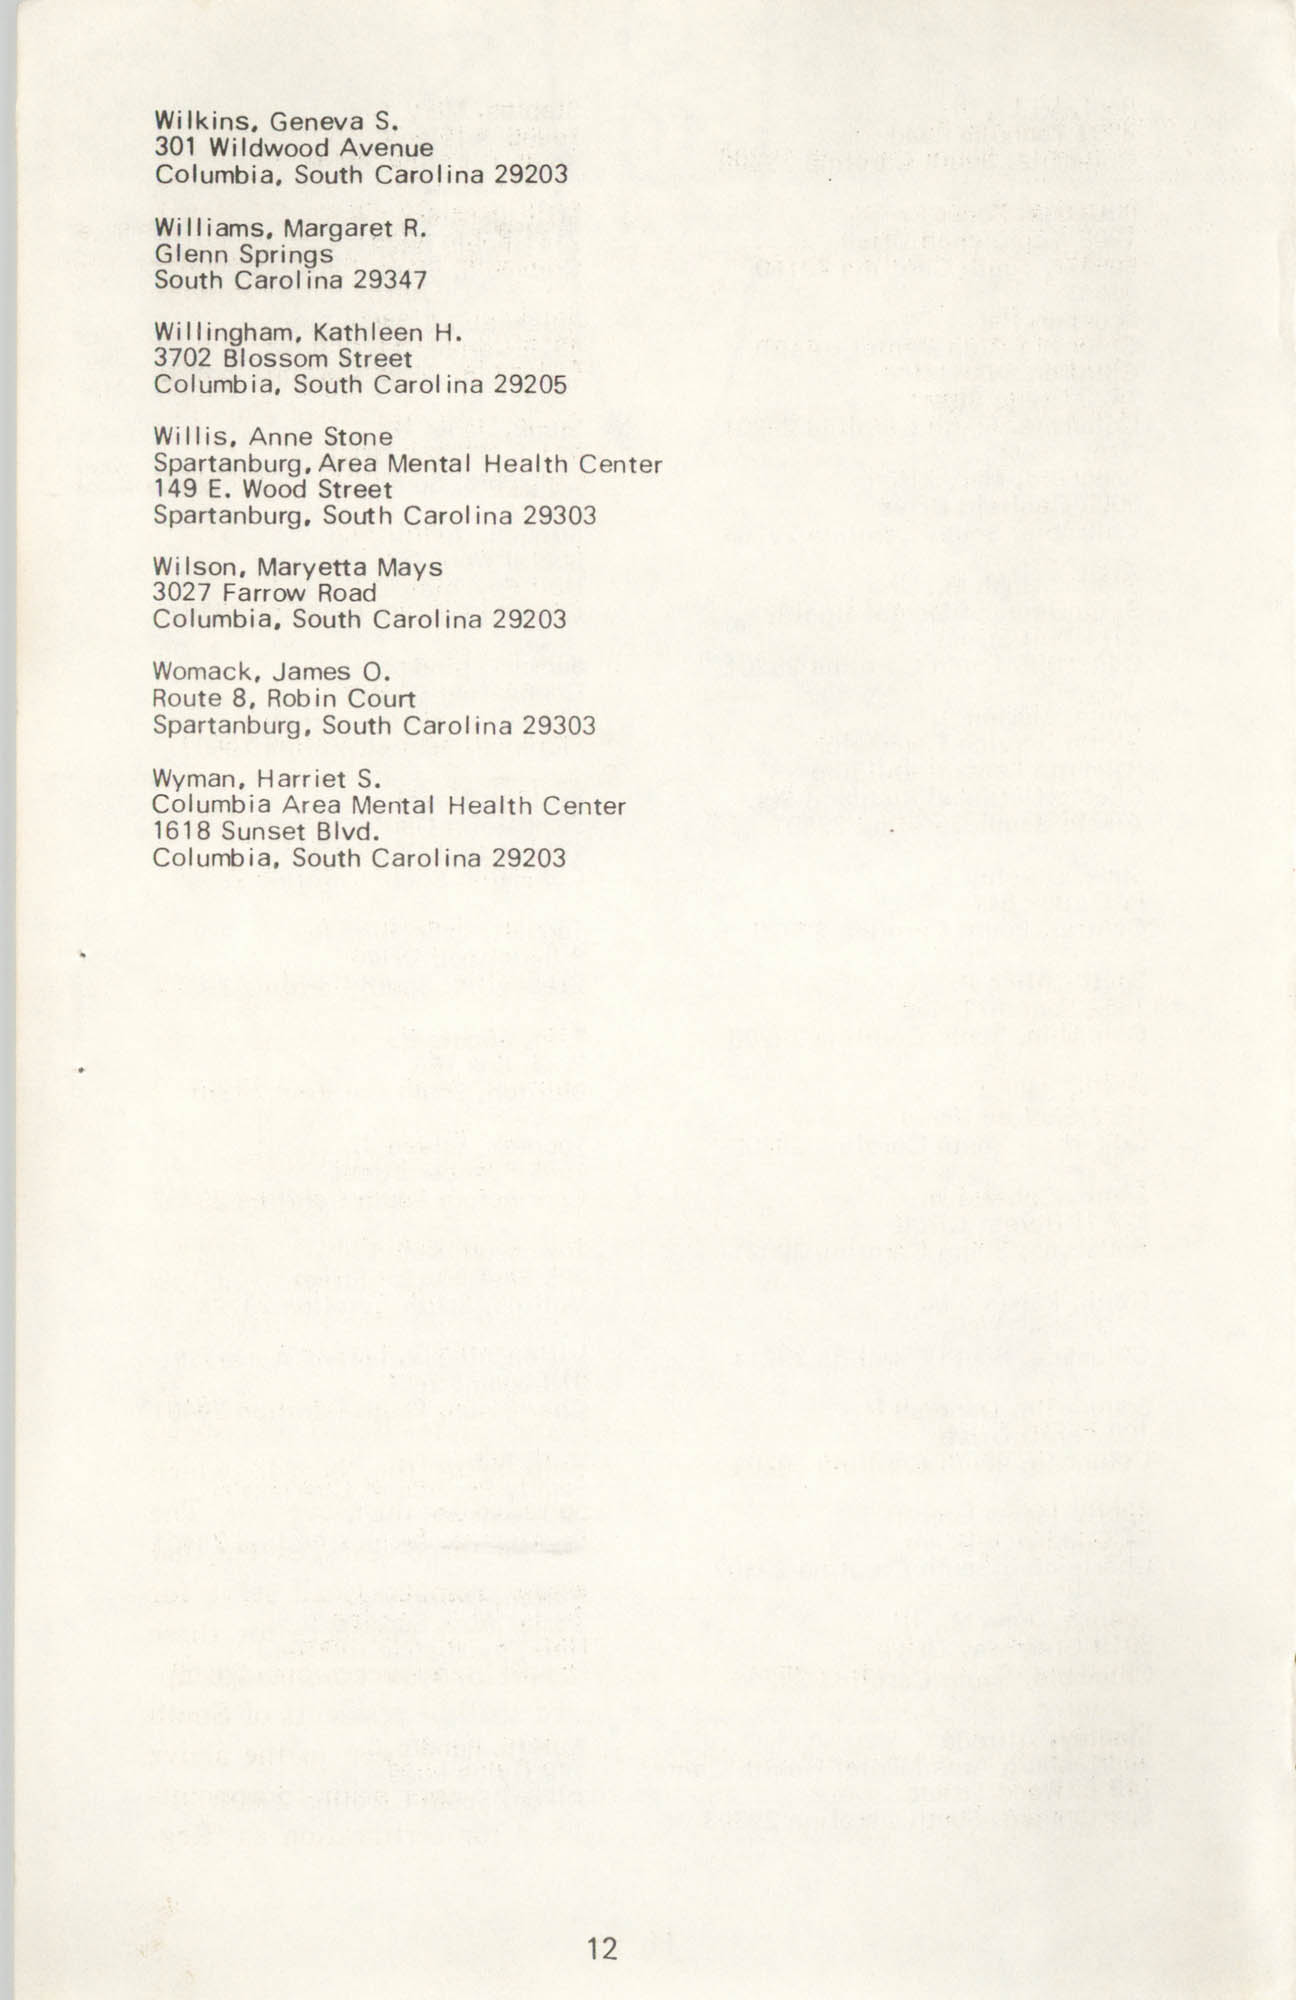 State of South Carolina Directory of Registered Social Workers, 1972, Page 12